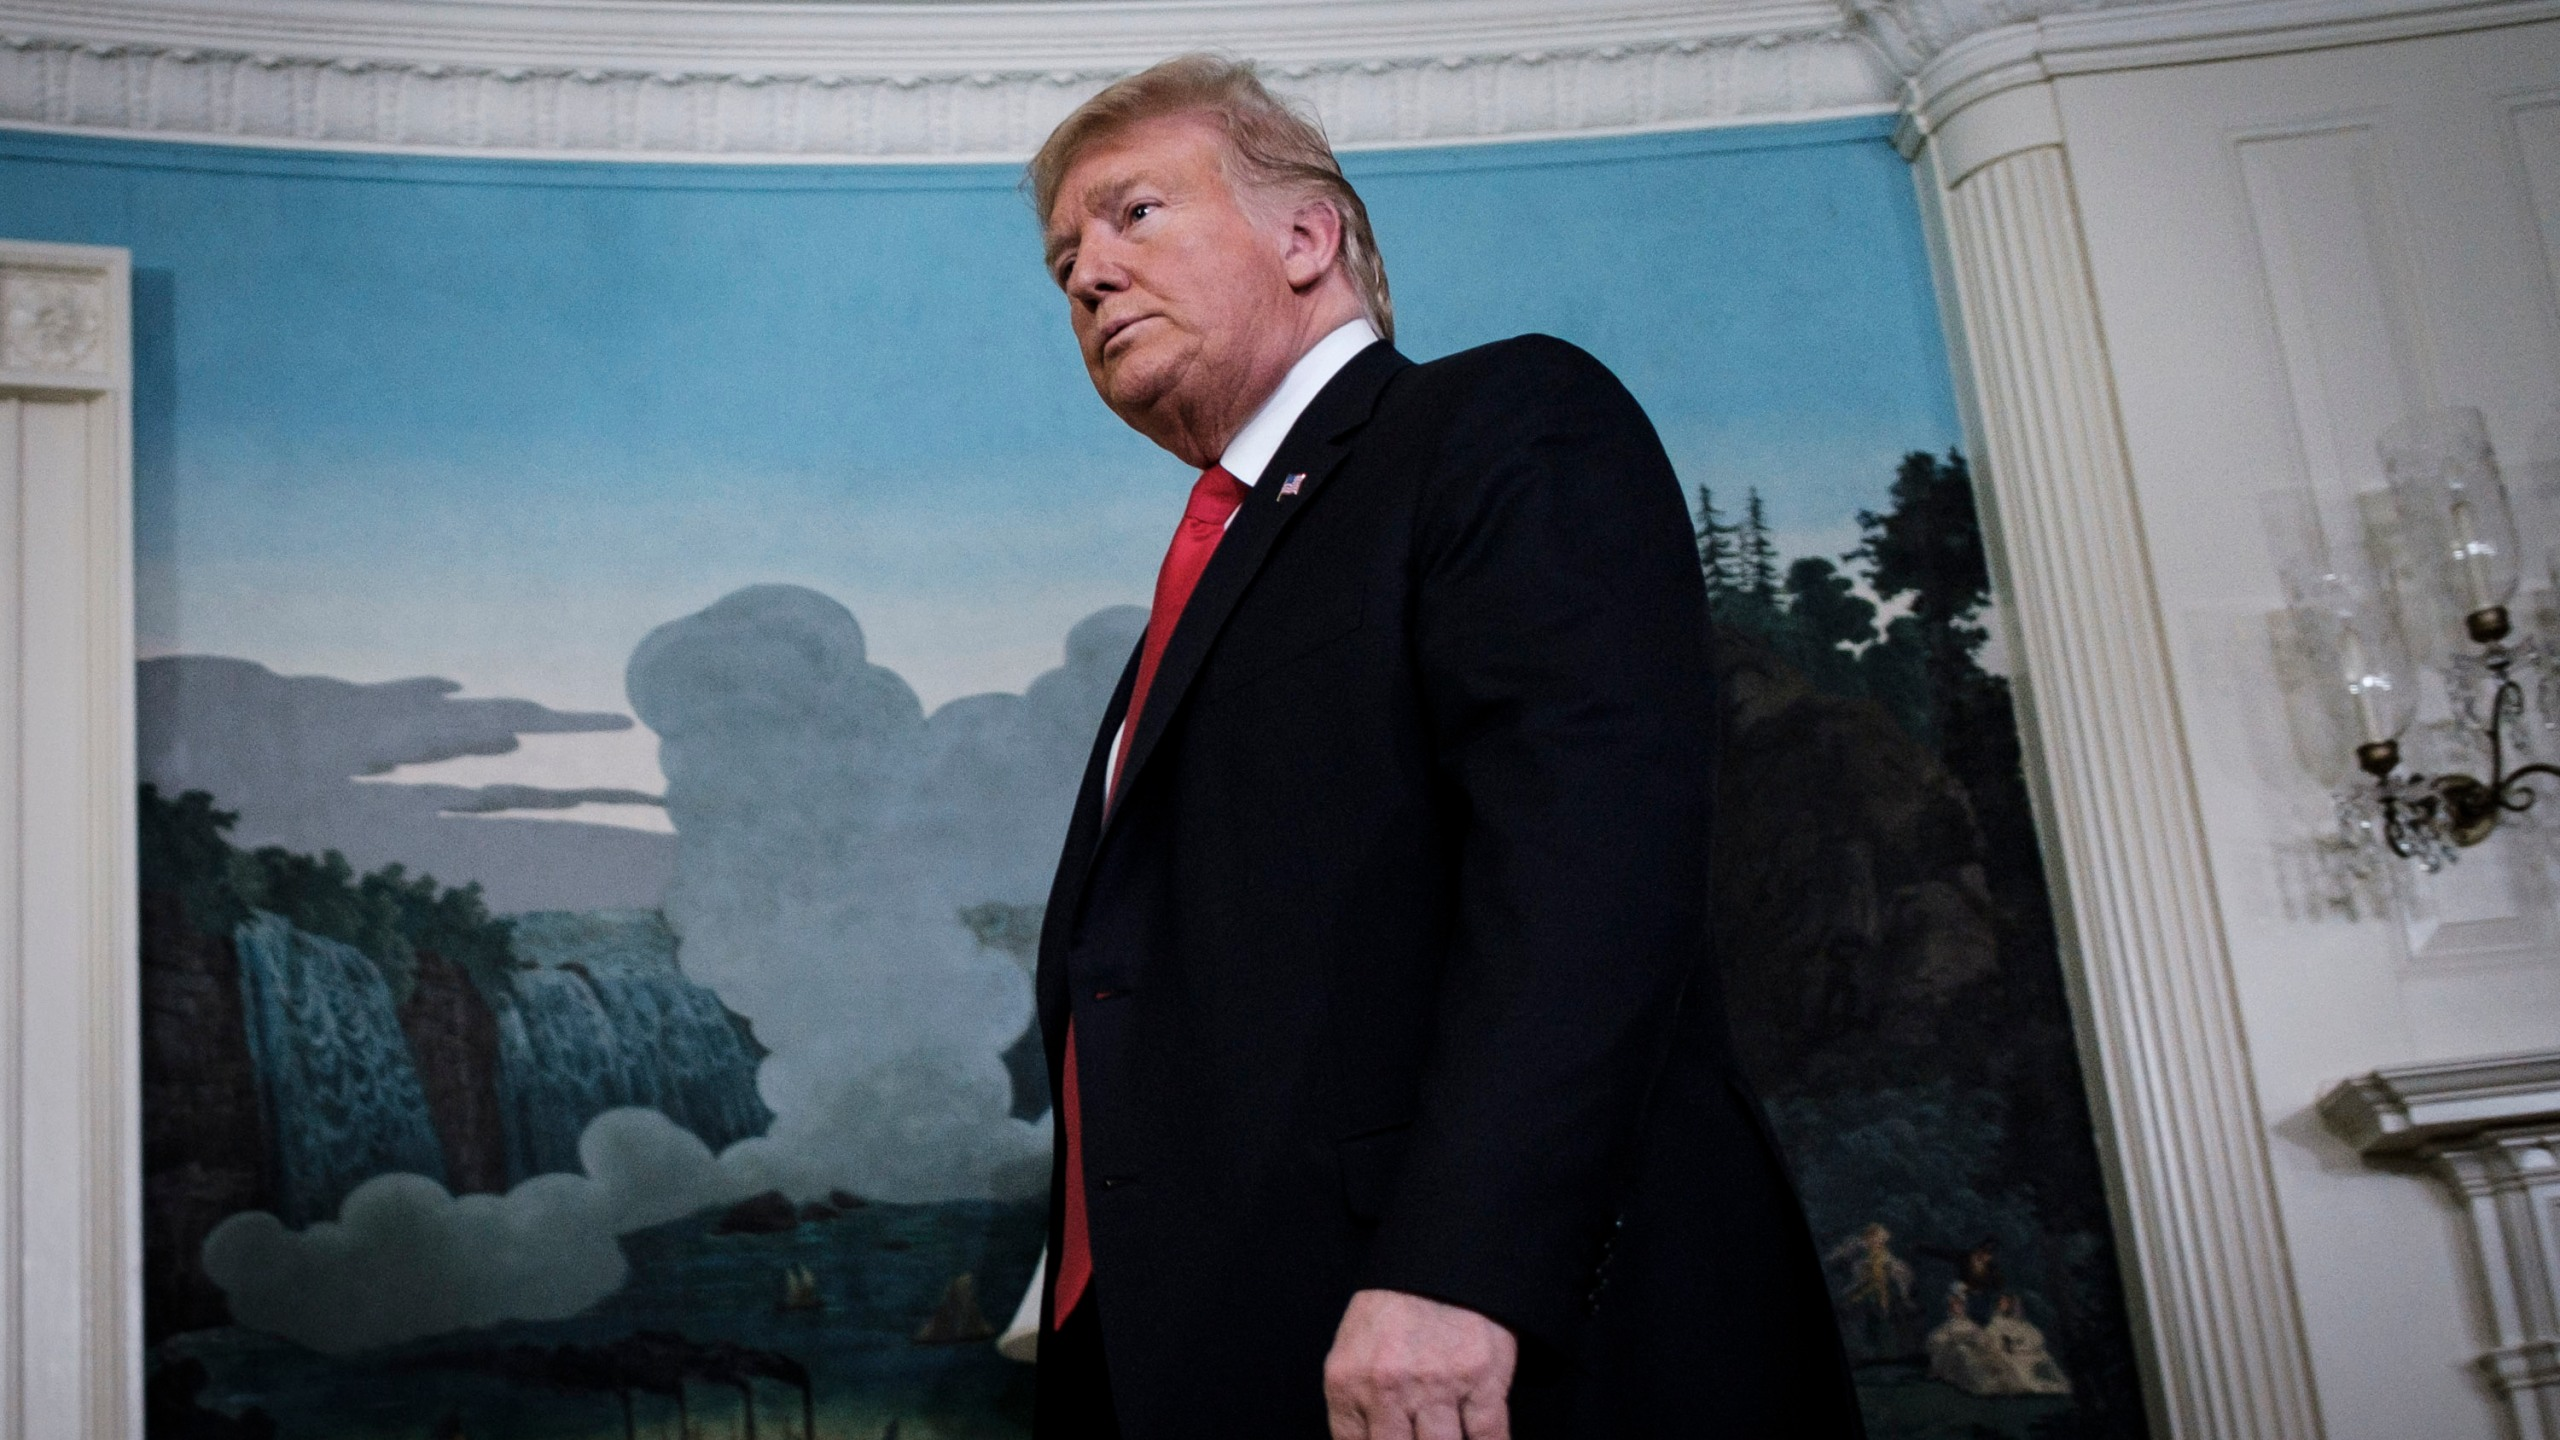 Trump exits the Diplomatic Reception Room at the White House on Jan. 19, 2019 in Washington, D.C. (Credit: Pete Marovich/Getty Images)